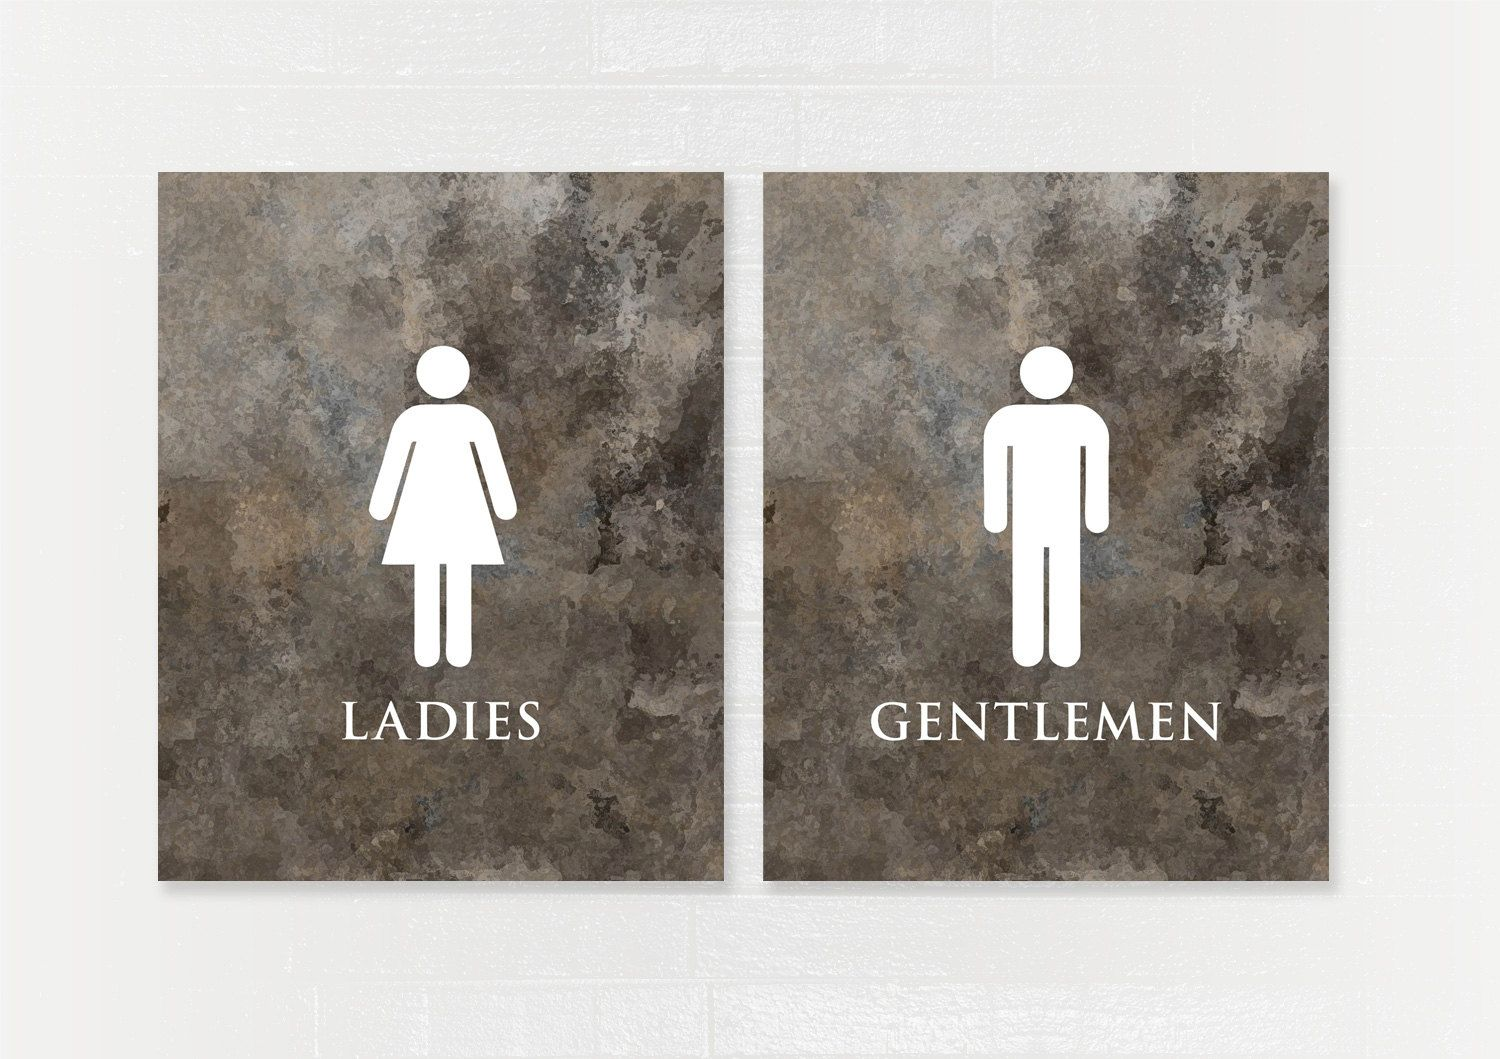 17 Best images about Signs  Operational  on Pinterest   Memorial plaques  Restroom  signs and Search. 17 Best images about Signs  Operational  on Pinterest   Memorial